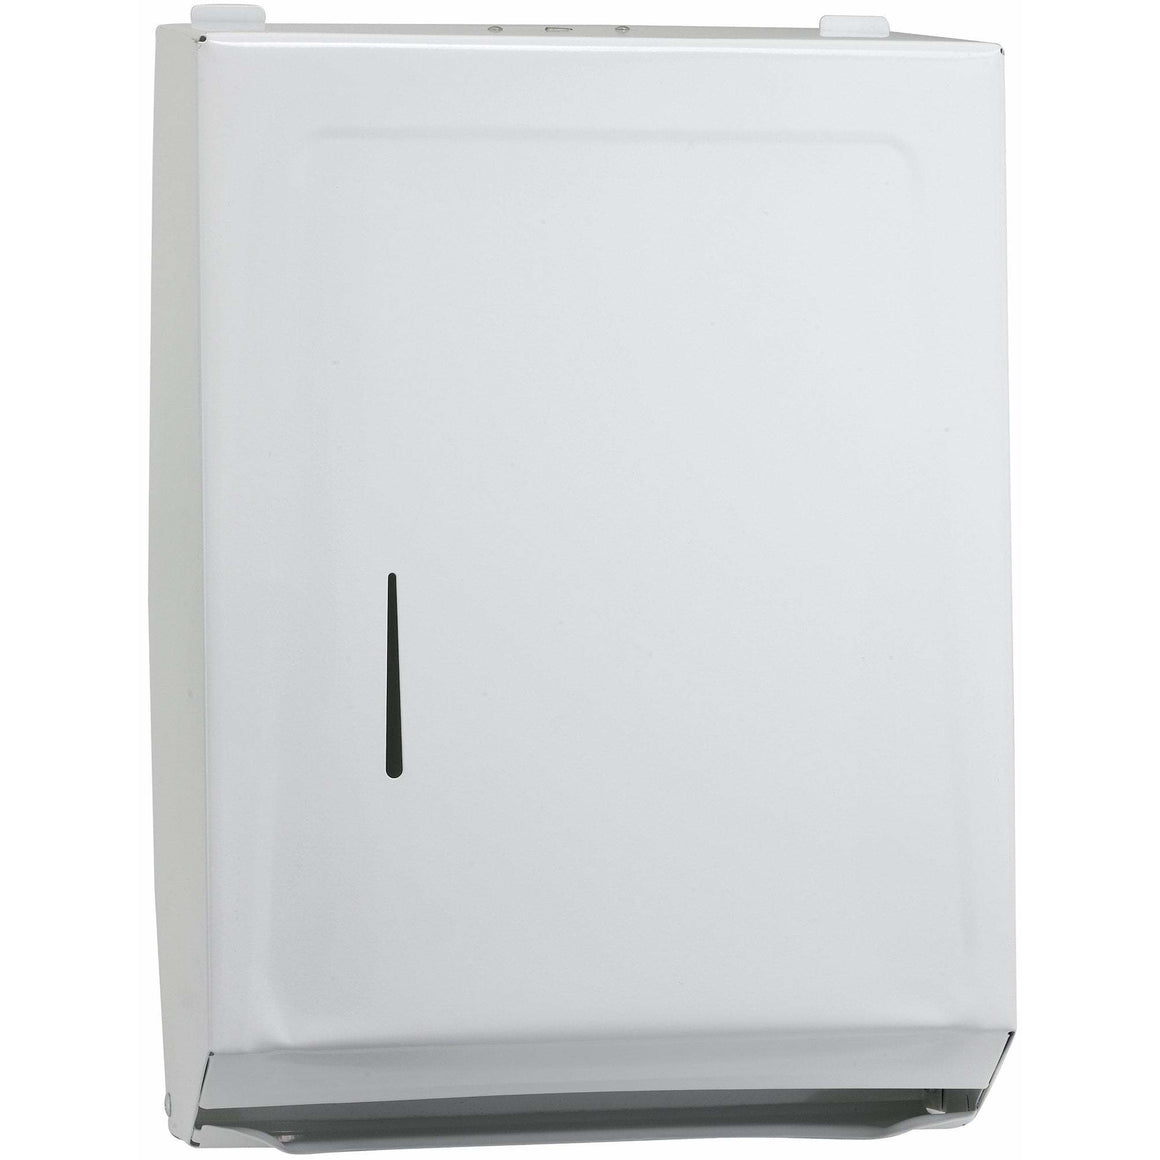 Winco - TD-600 - Paper Towel Dispenser, M/C-Folds, White - Janitorial